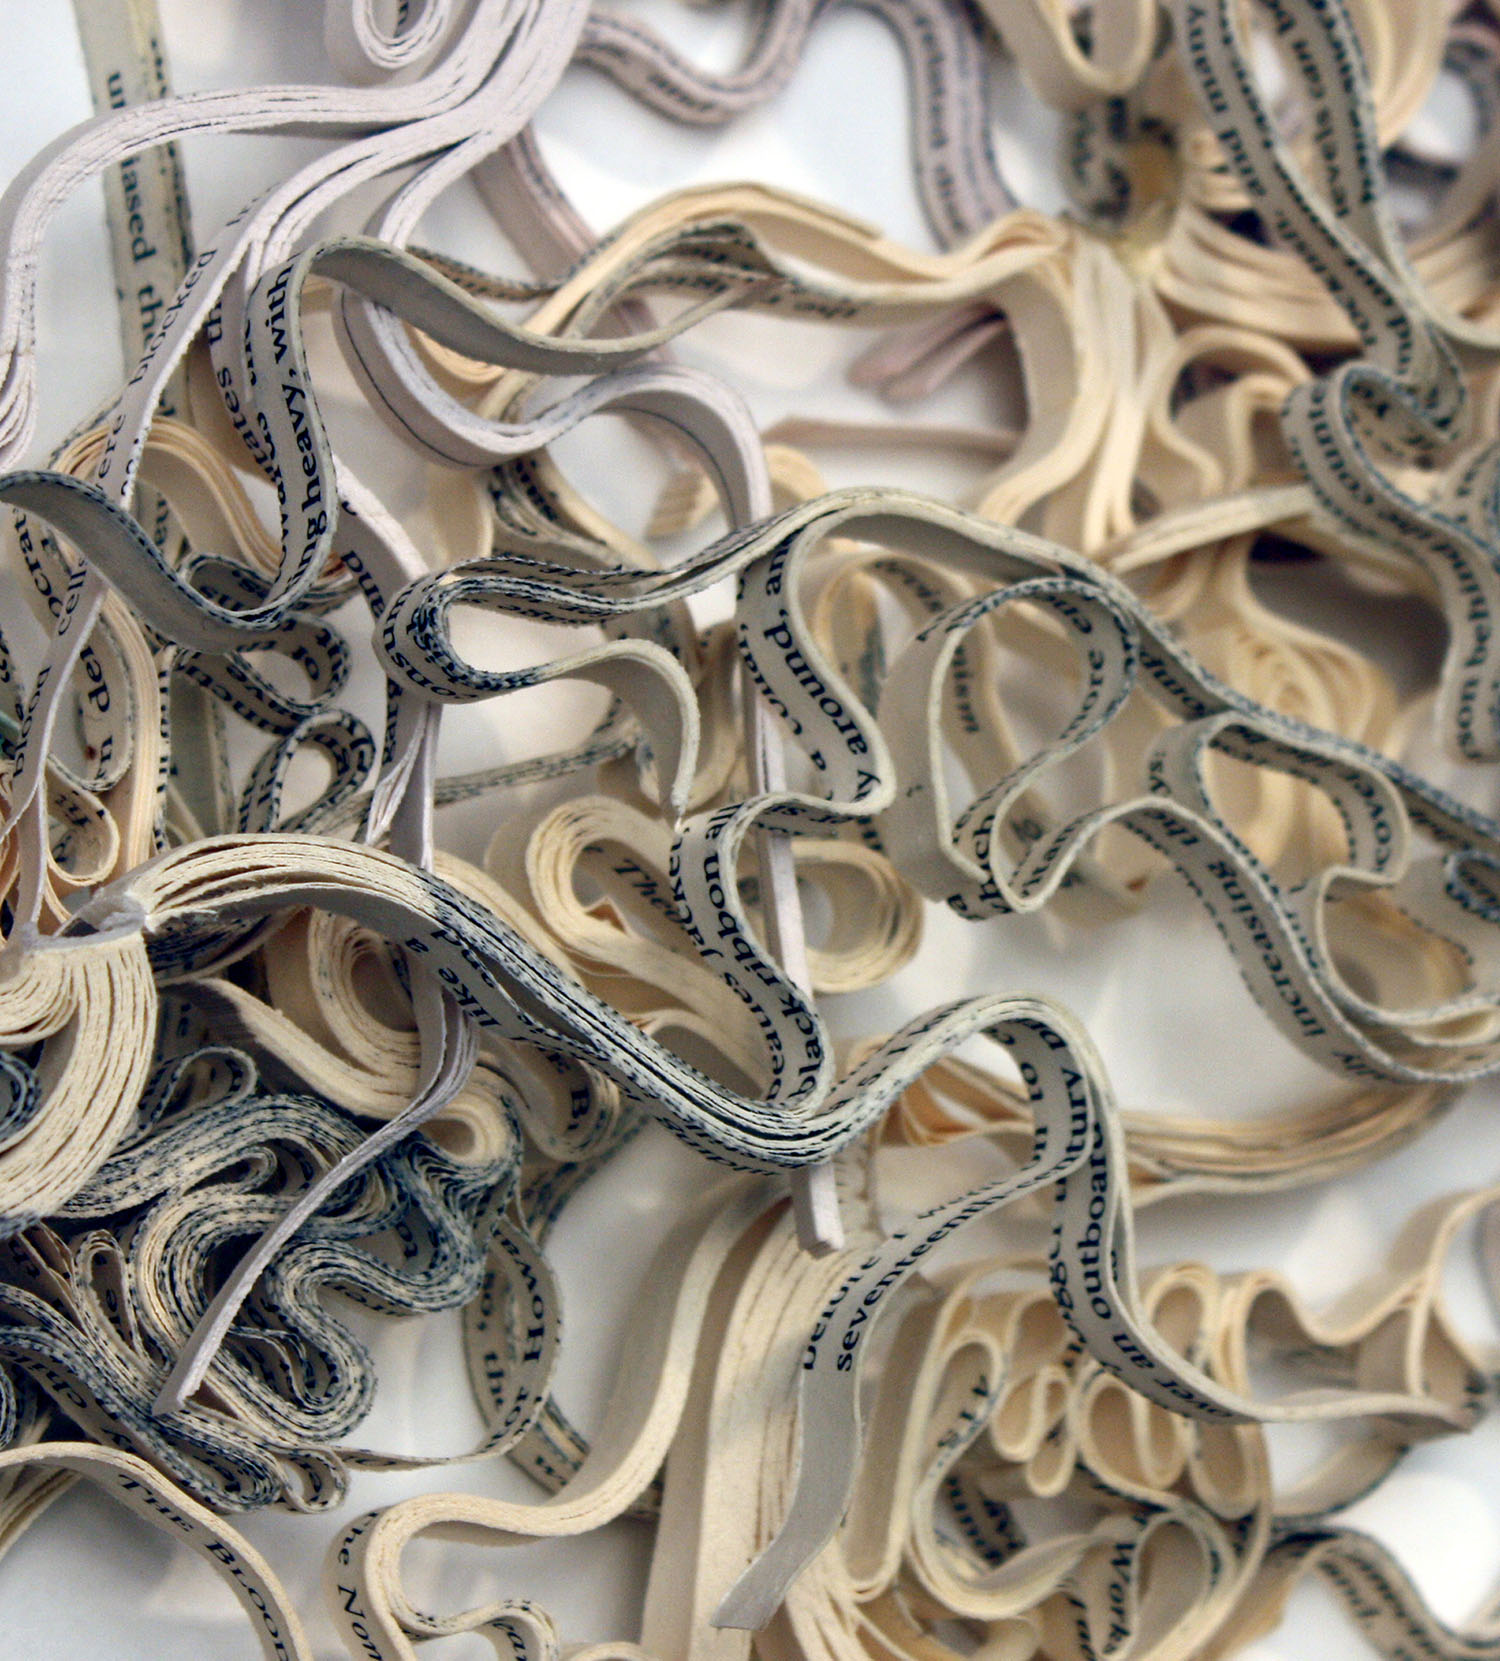 Artist Creates Massive Altered Book Sculptures Coated in Wax by Jessica Drenk - Cerebral Mapping